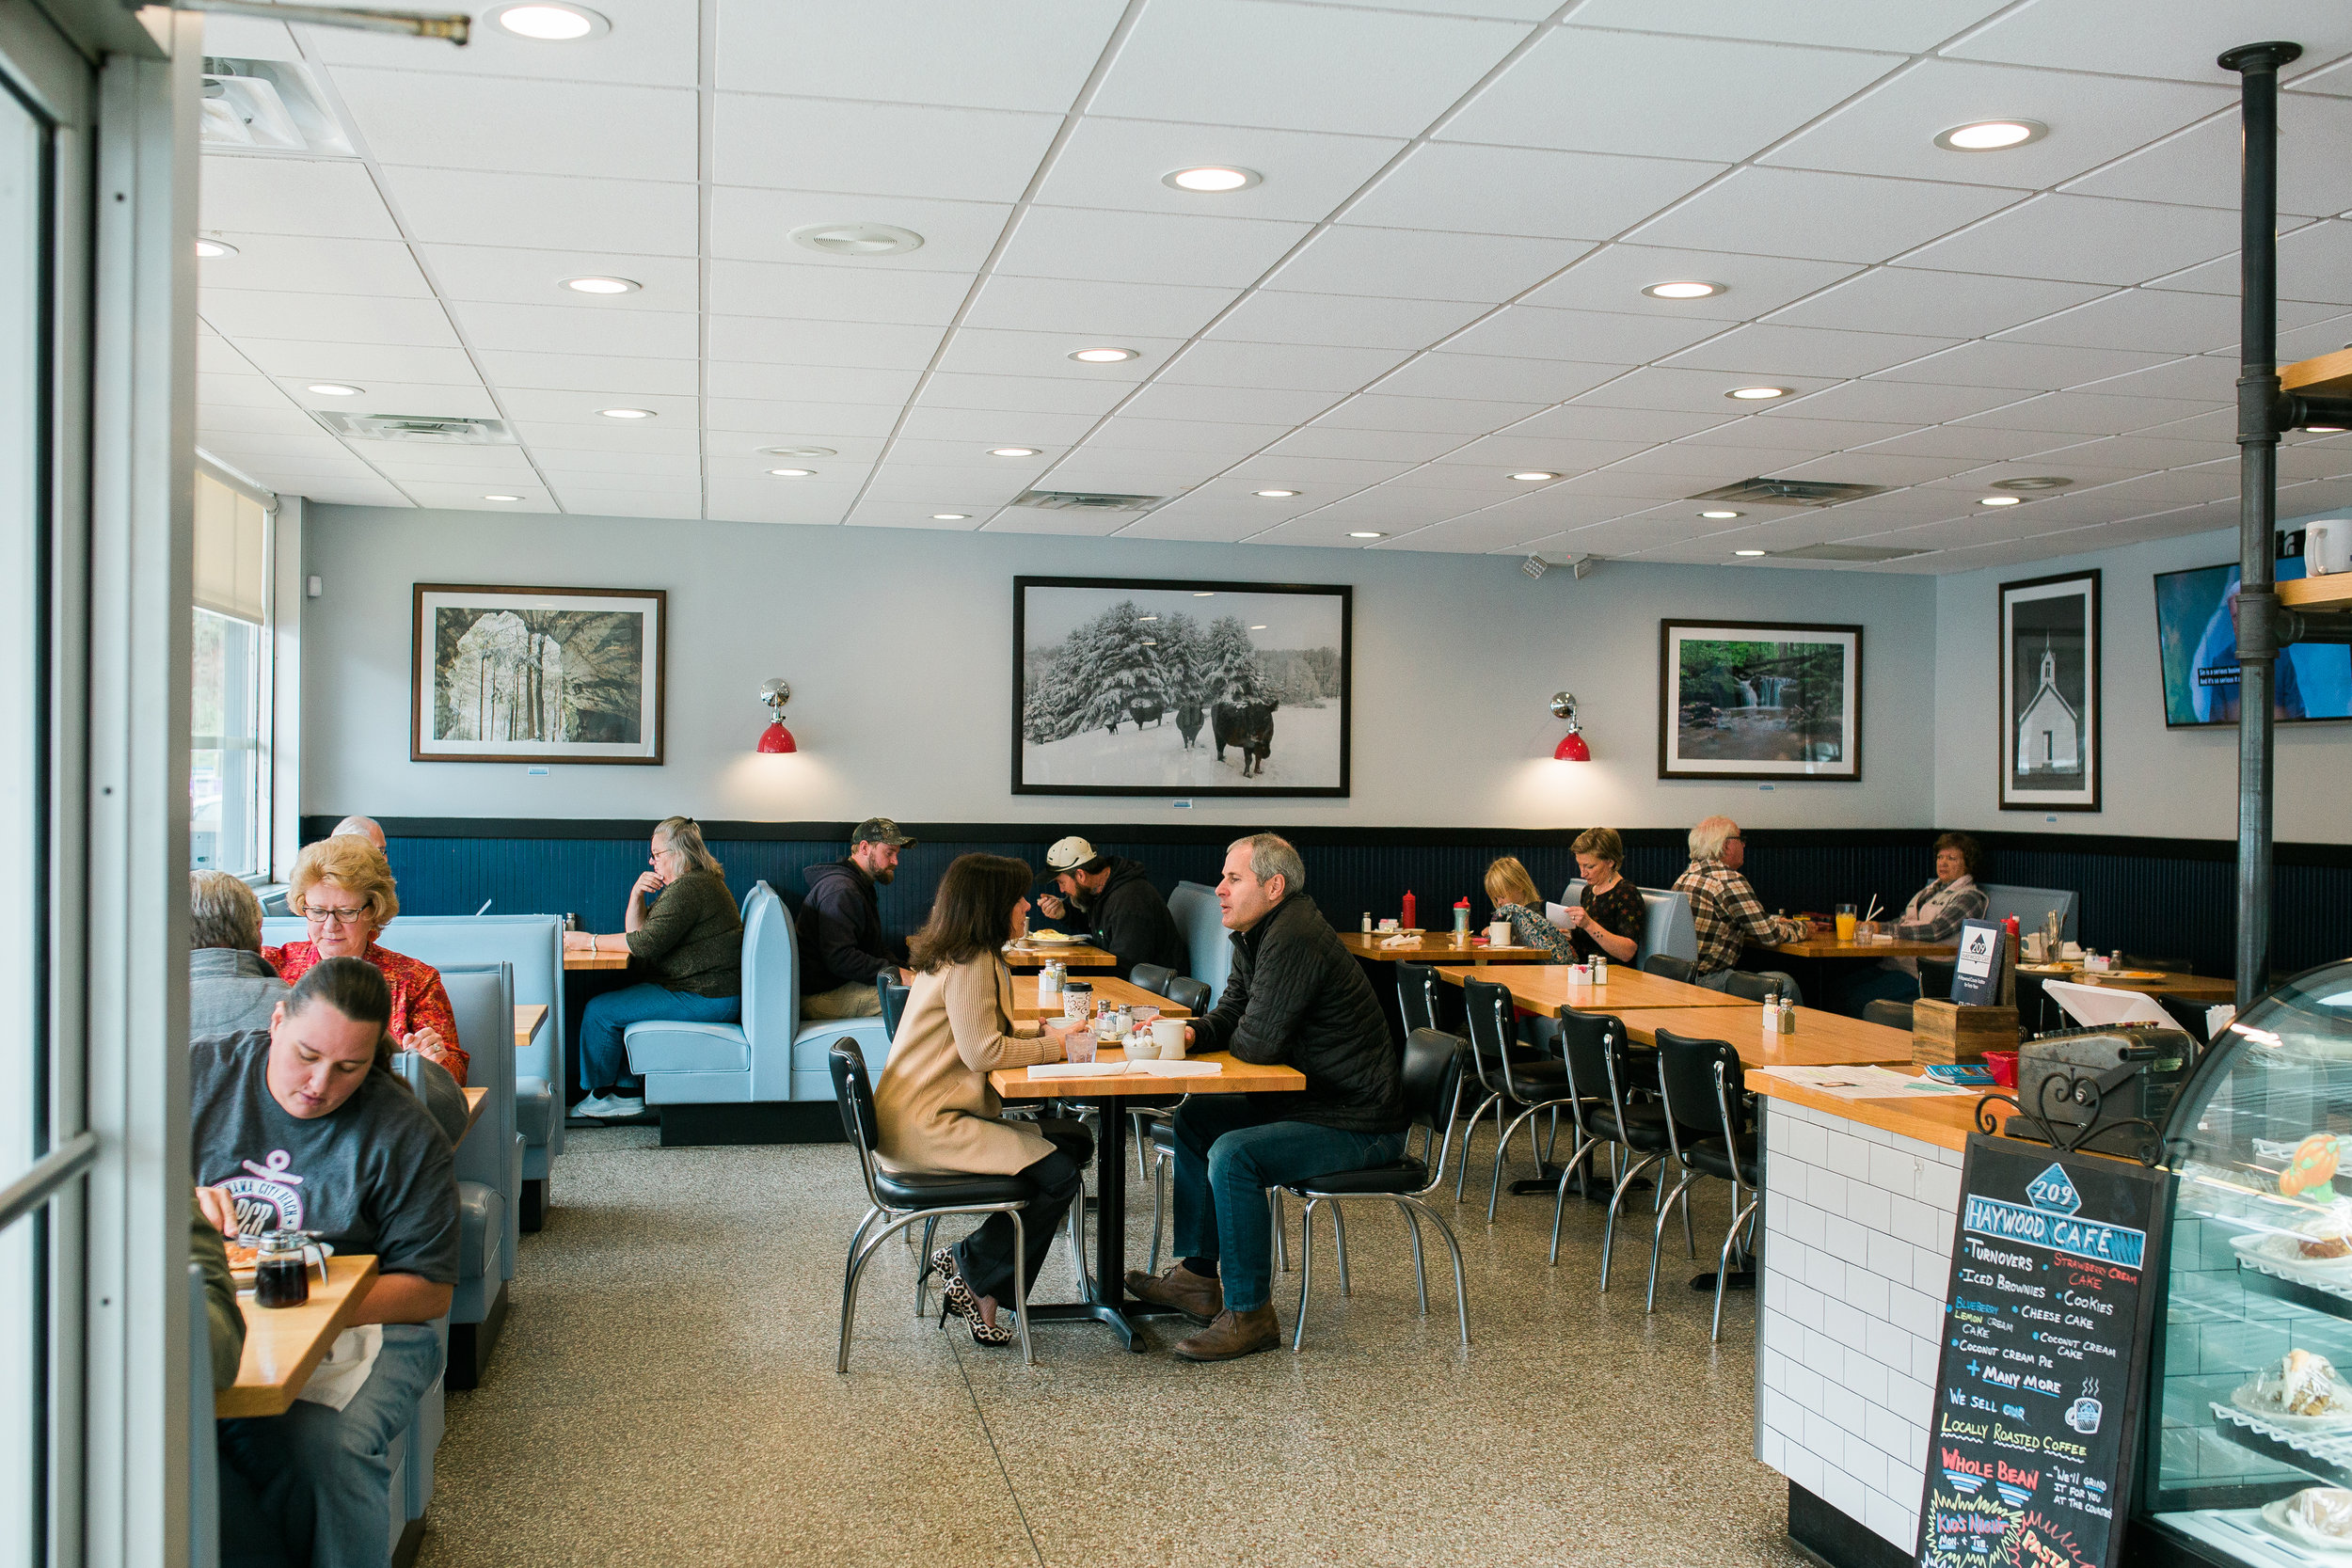 customers seated at tables inside a local diner